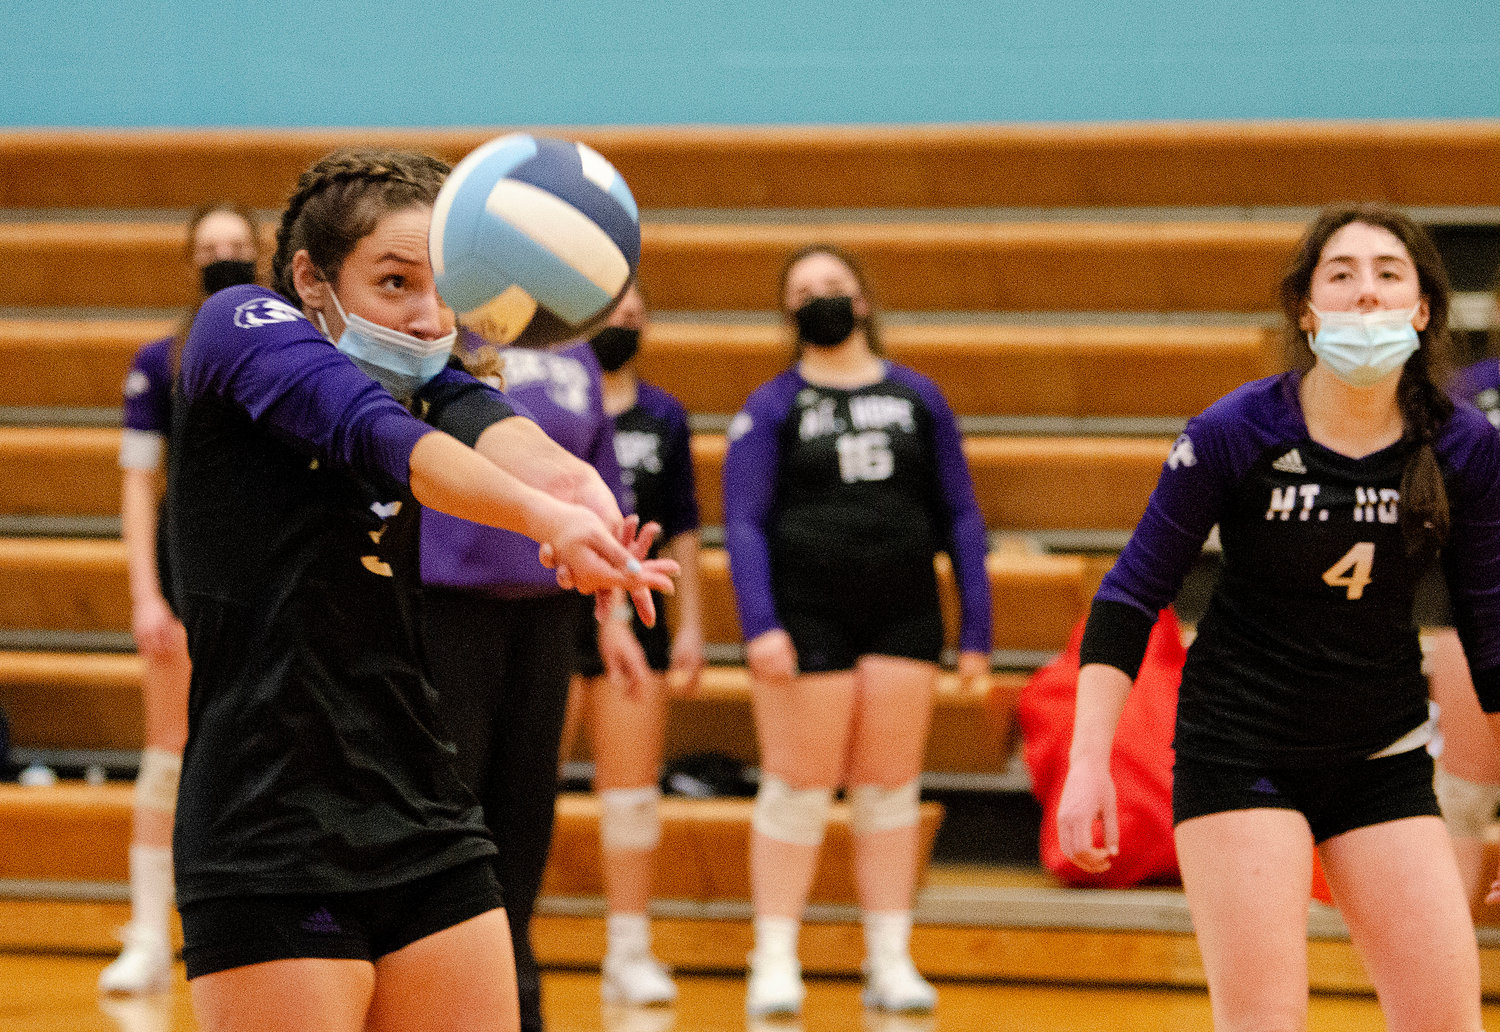 Isabel Savinon volleys the ball (left) with Hannah Rodriques looking on during Mt. Hope's quarterfinals match against Johnston on Tuesday night.